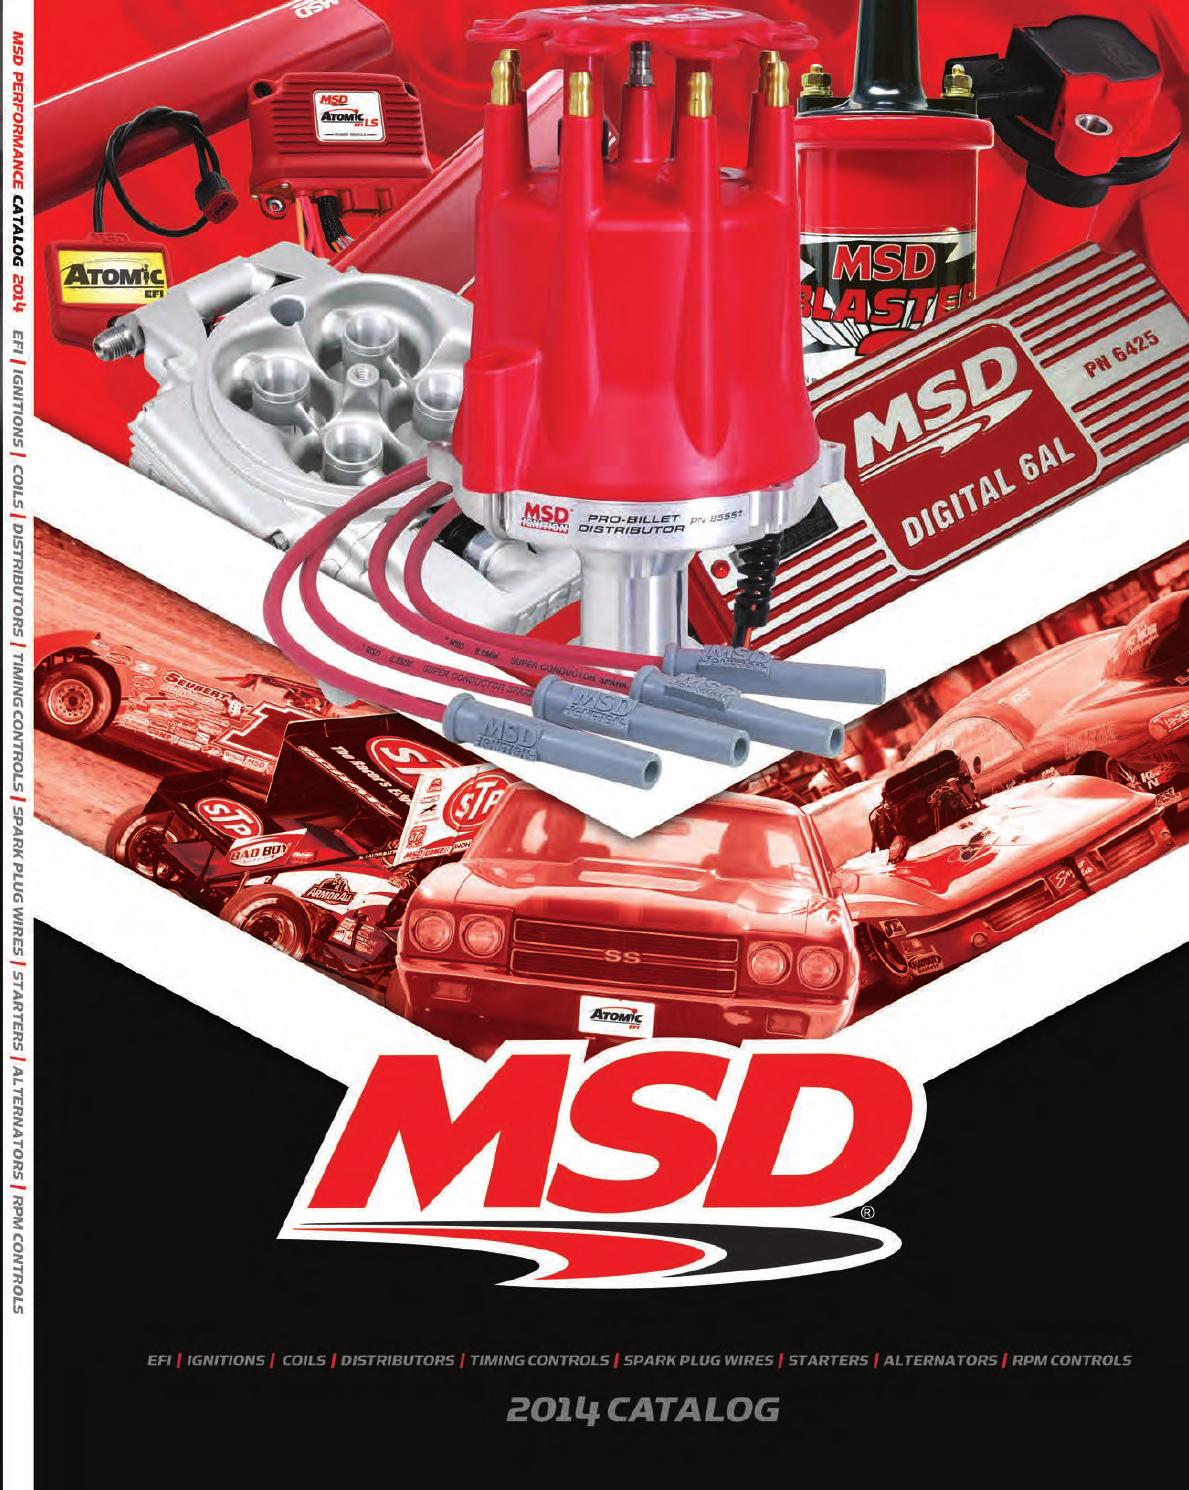 boost msd digital 6al wiring diagram 2014 msd catalog by tmeyer inc issuu  2014 msd catalog by tmeyer inc issuu